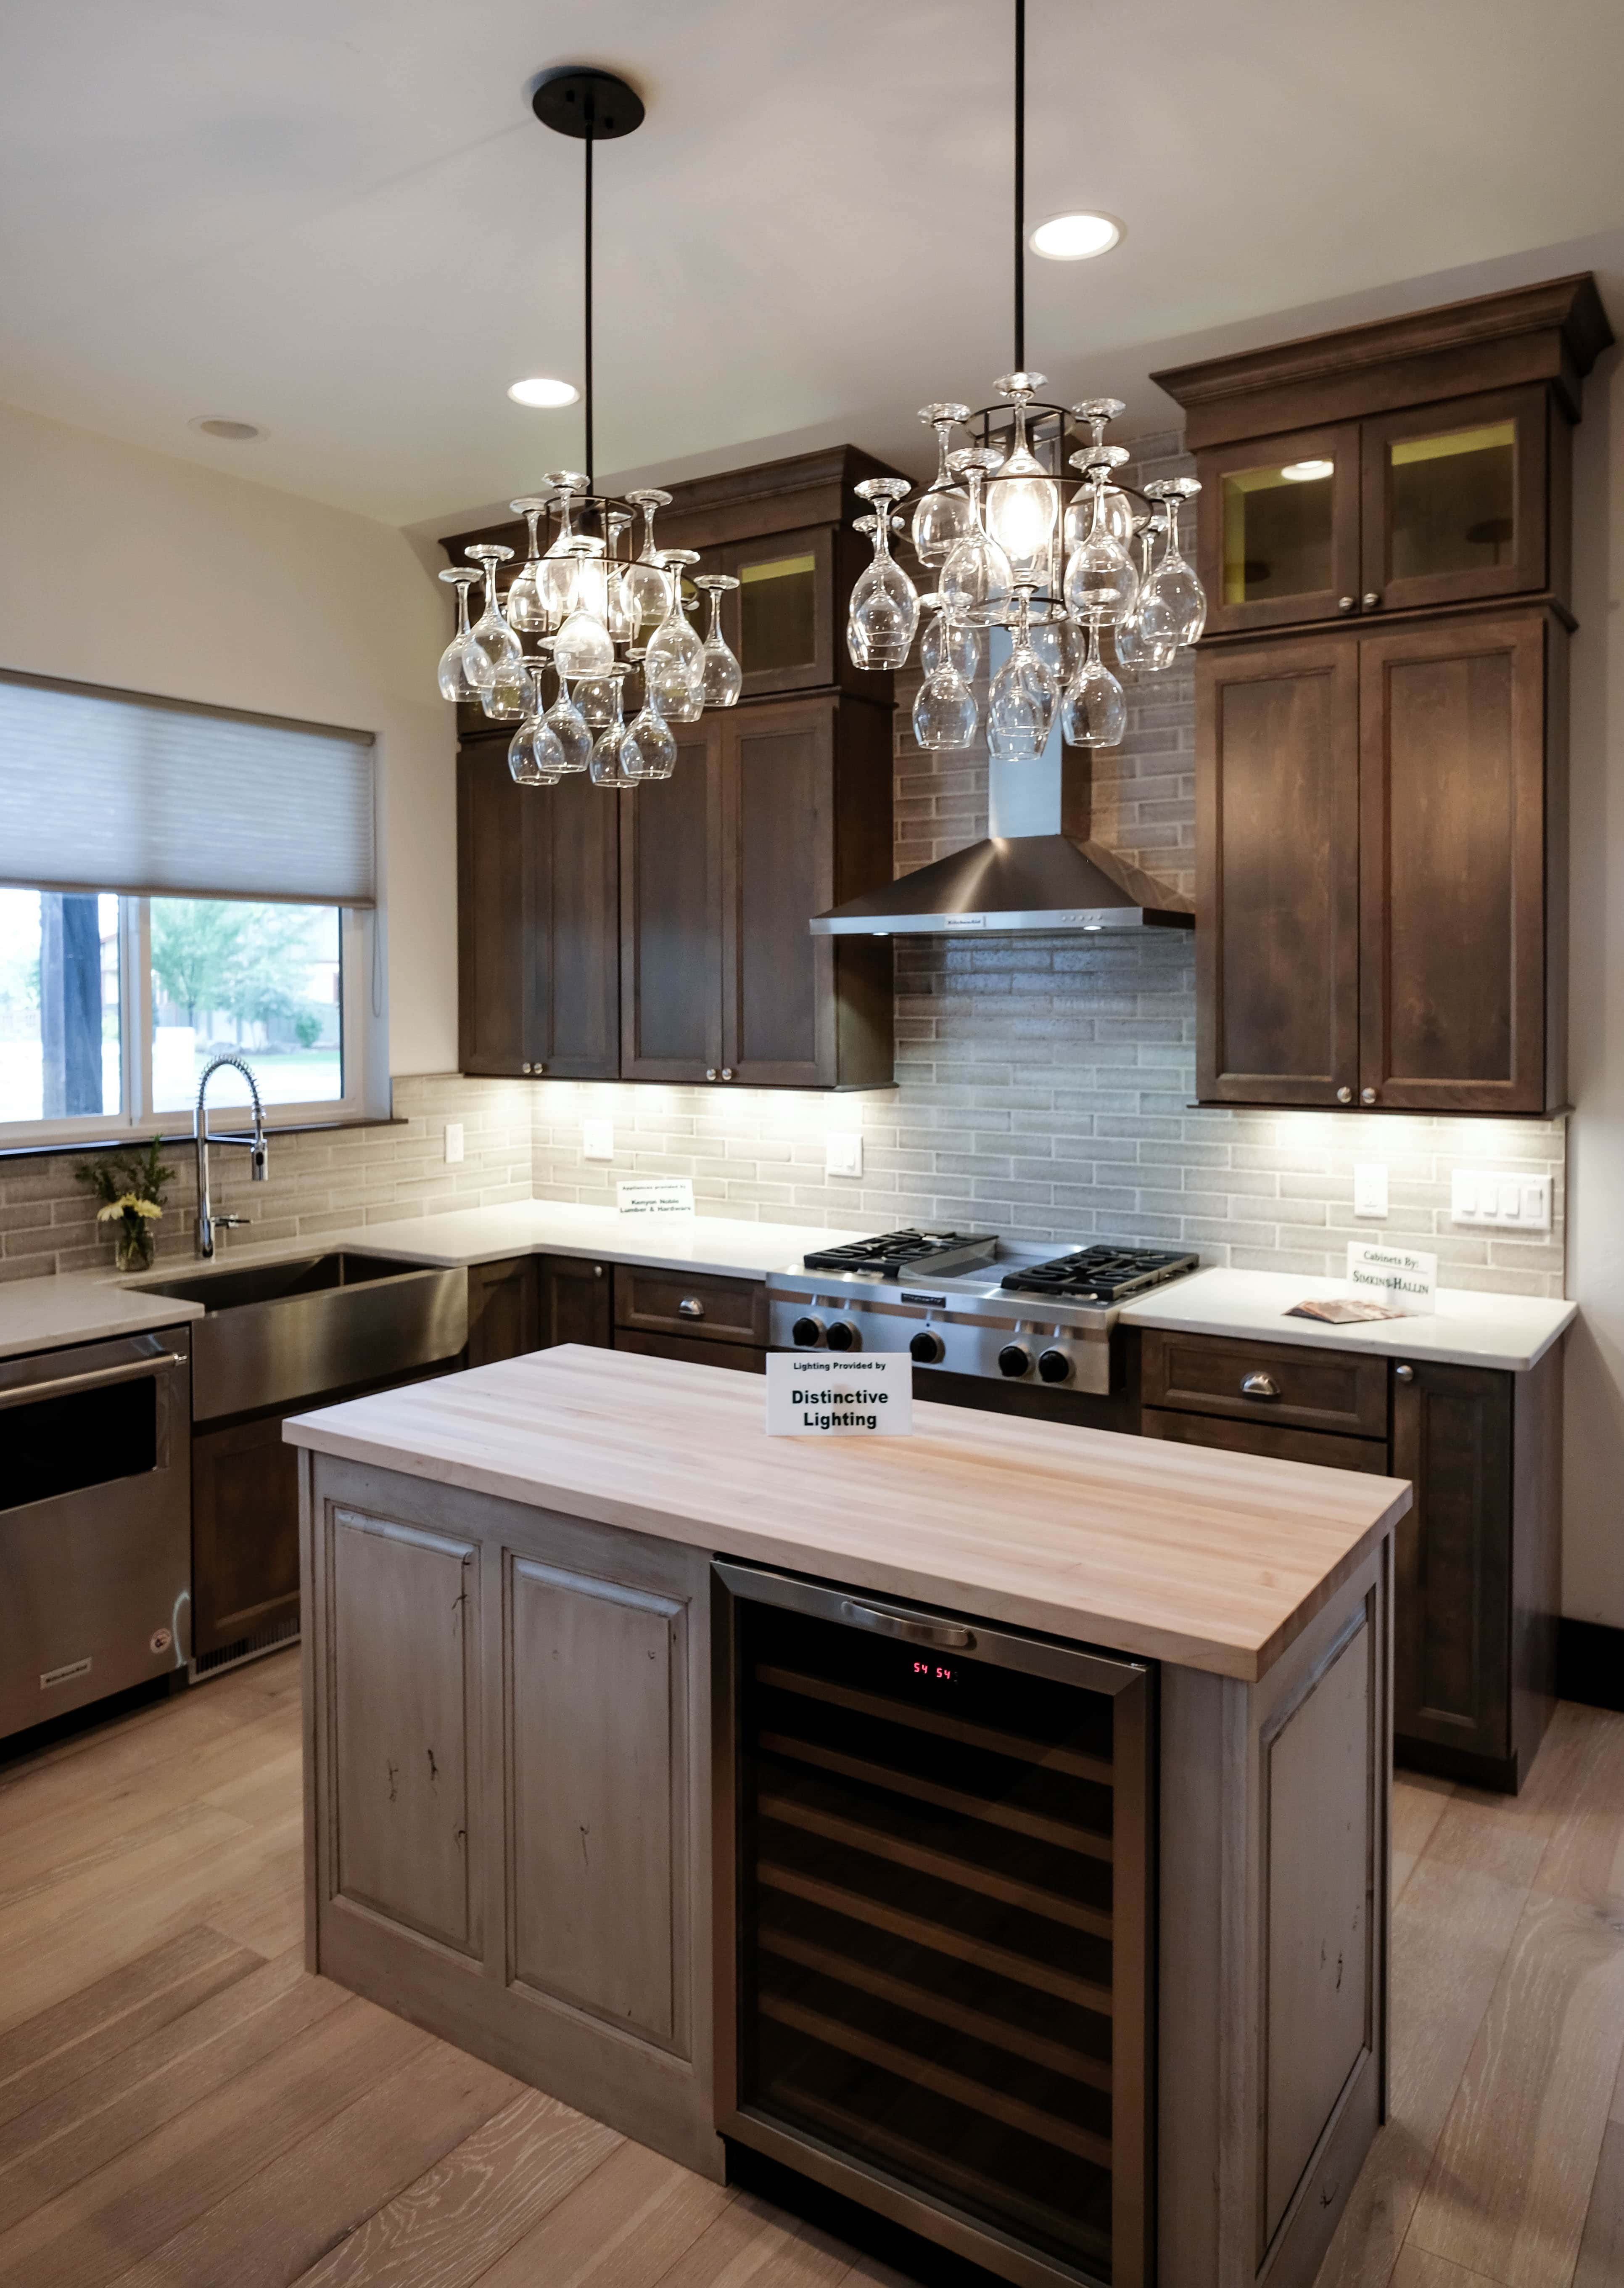 Parade of Homes designer kitchen with dark cabinets, and butcher block island